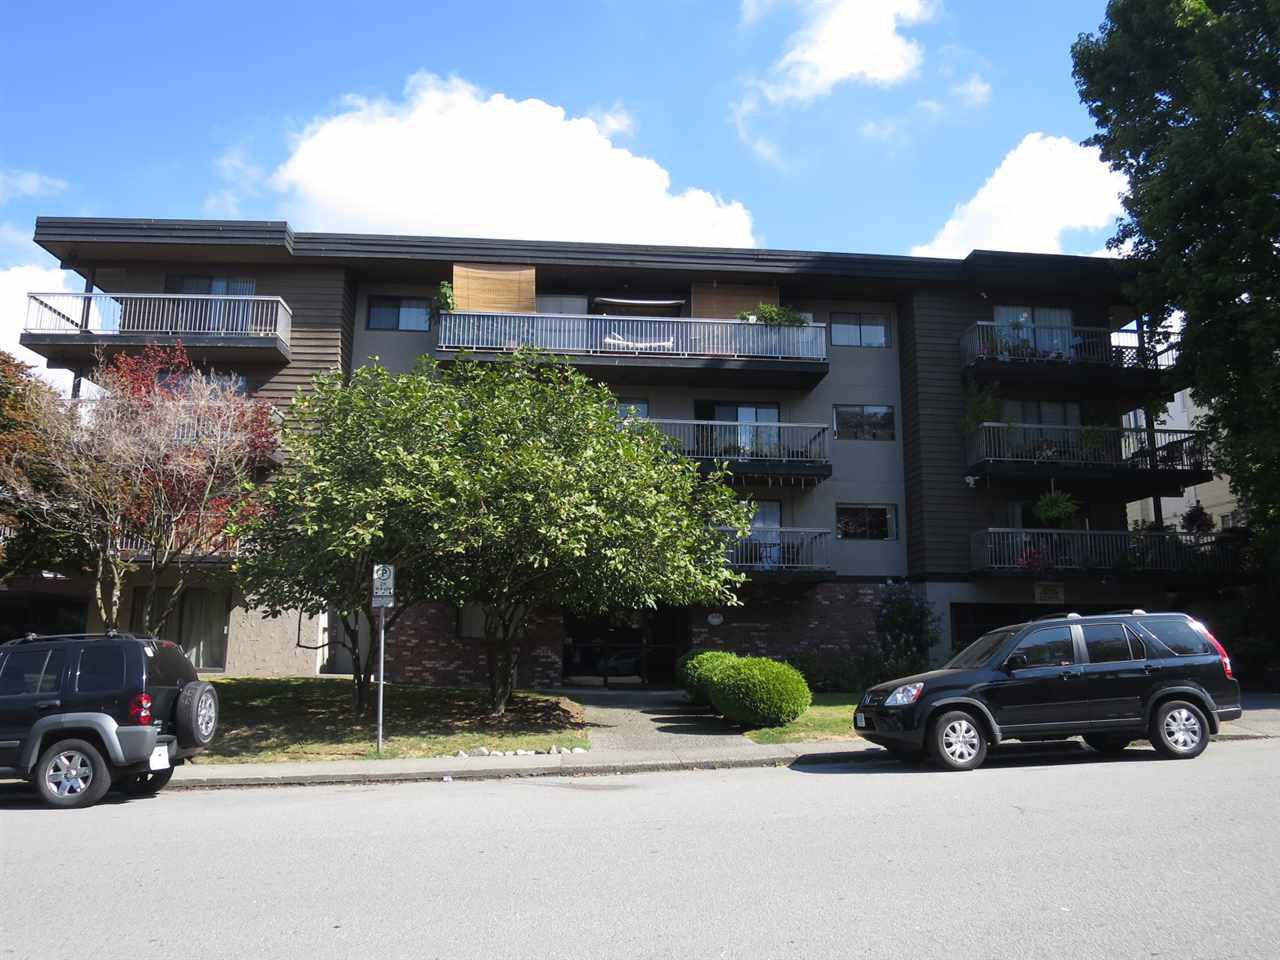 Main Photo: 102 330 W 2 STREET in North Vancouver: Lower Lonsdale Condo for sale : MLS®# R2206253